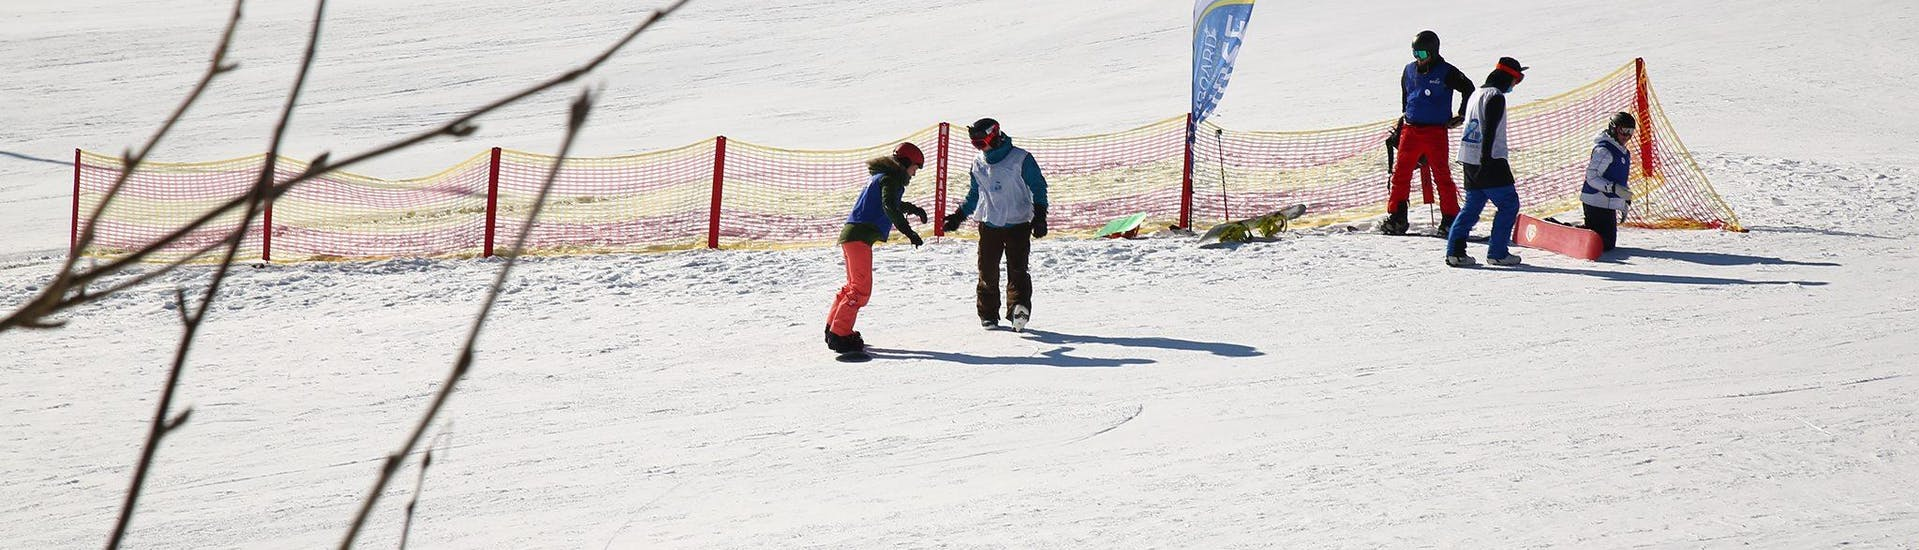 Snowboard Lessons for Kids & Adults - First Timer - Full Day